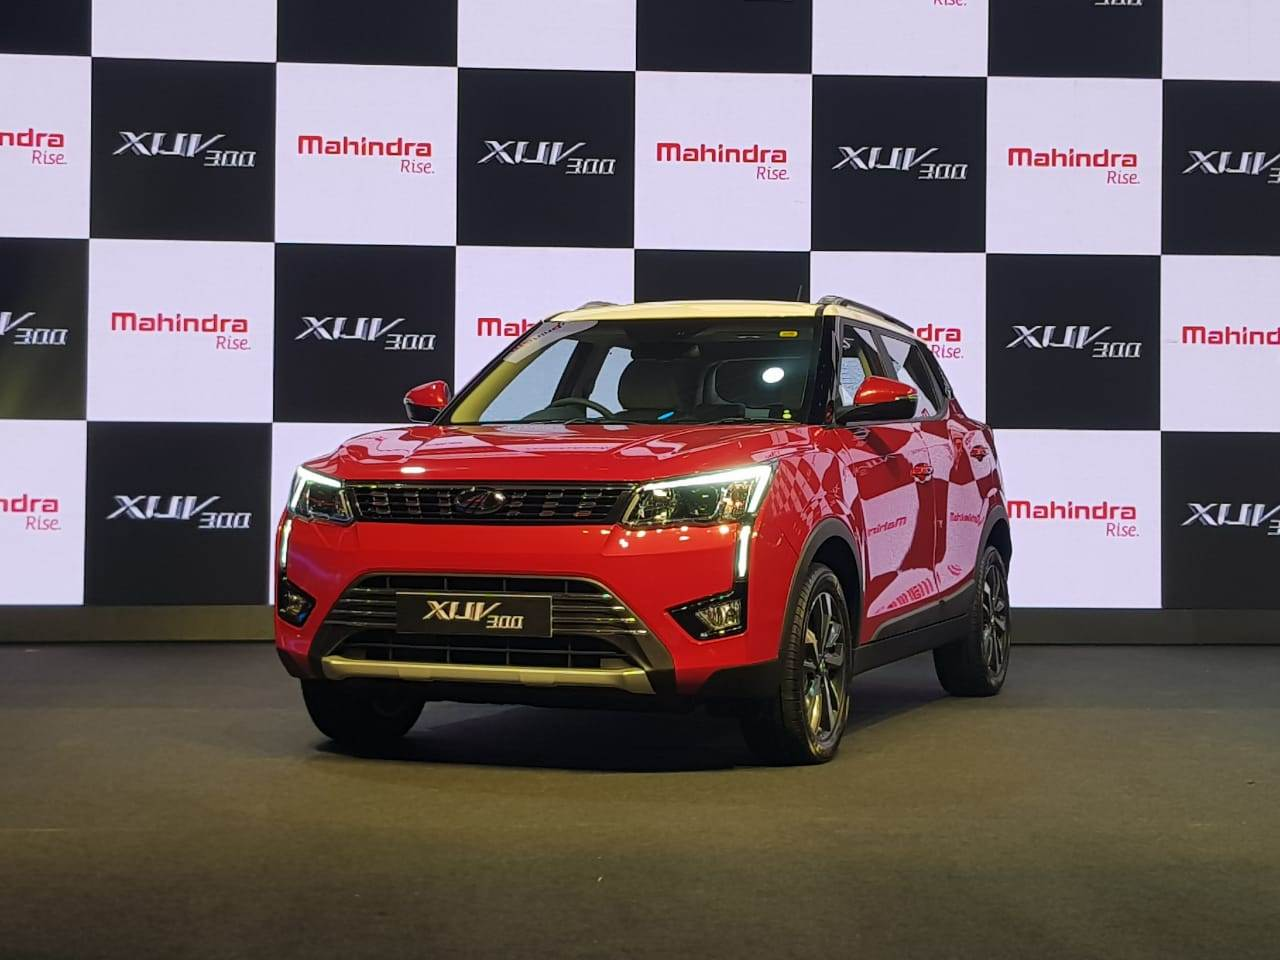 2019 Mahindra XUV300 price, variants explained